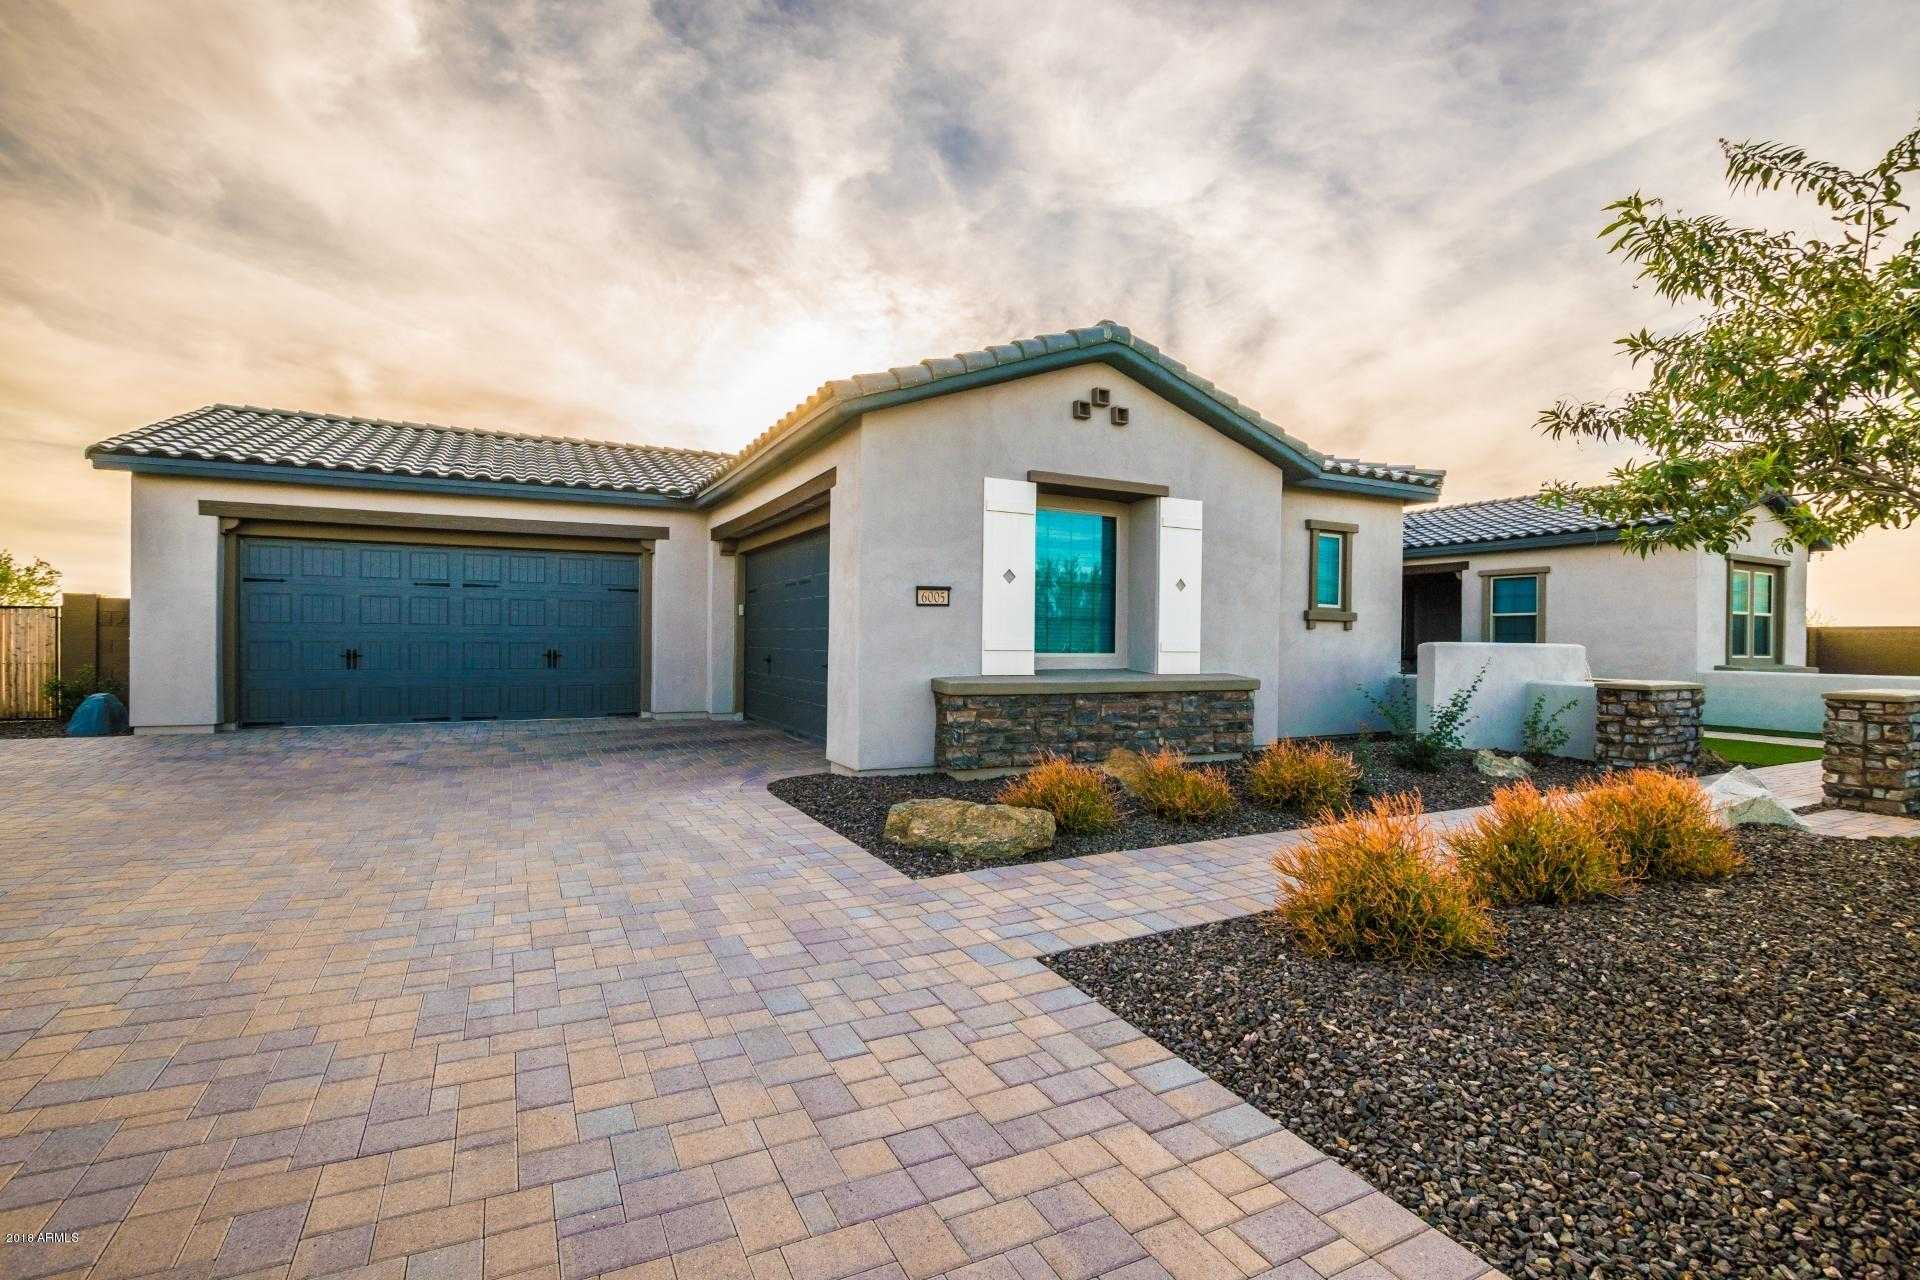 $903,500 - 4Br/4Ba - Home for Sale in Lone Mountain, Cave Creek